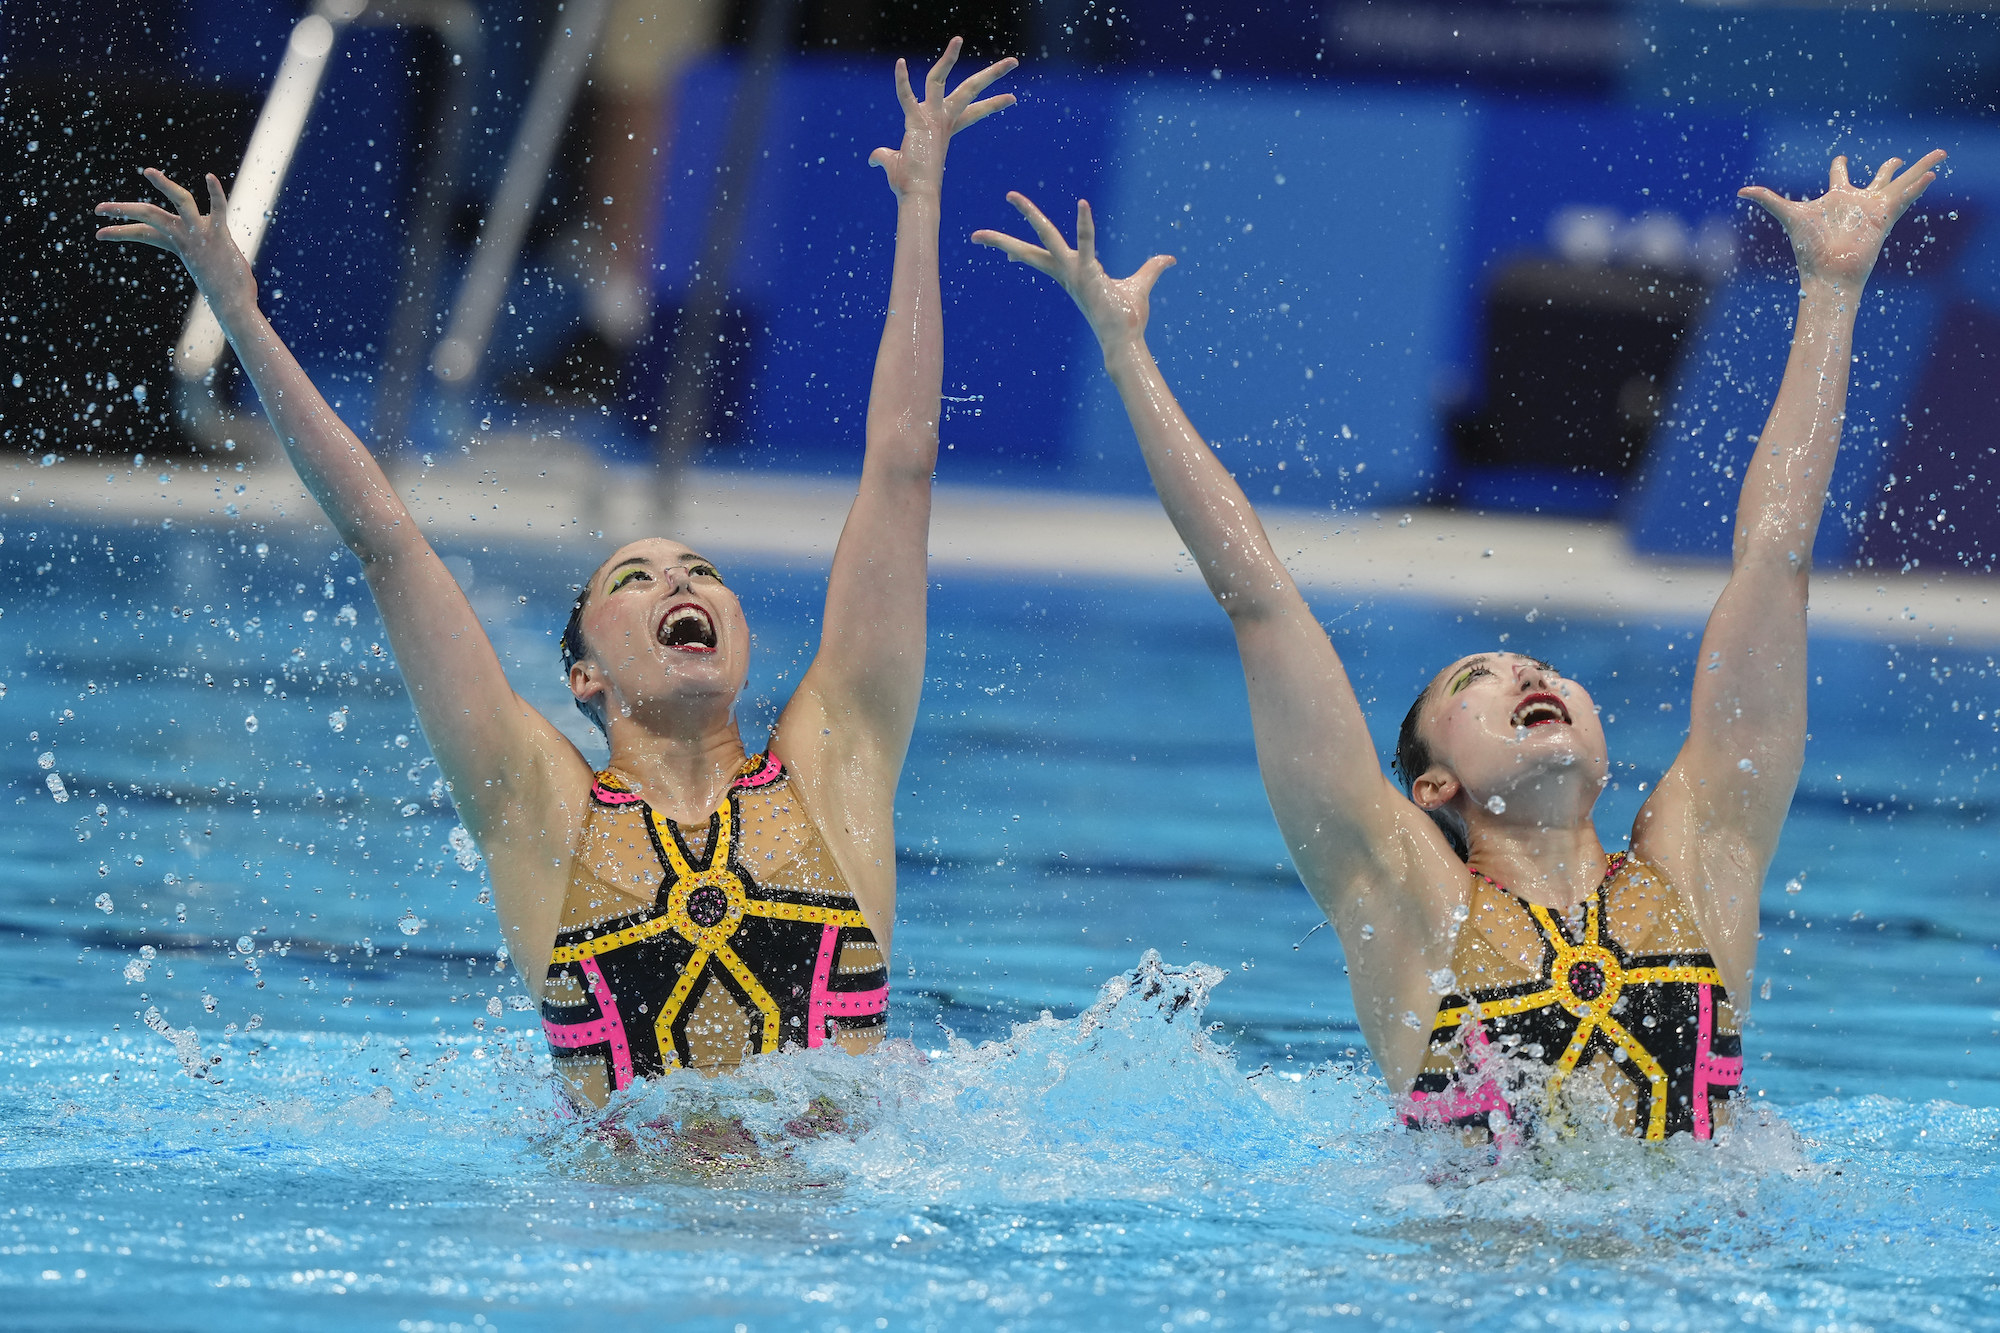 Two swimmers hold their arms above the water in a pool